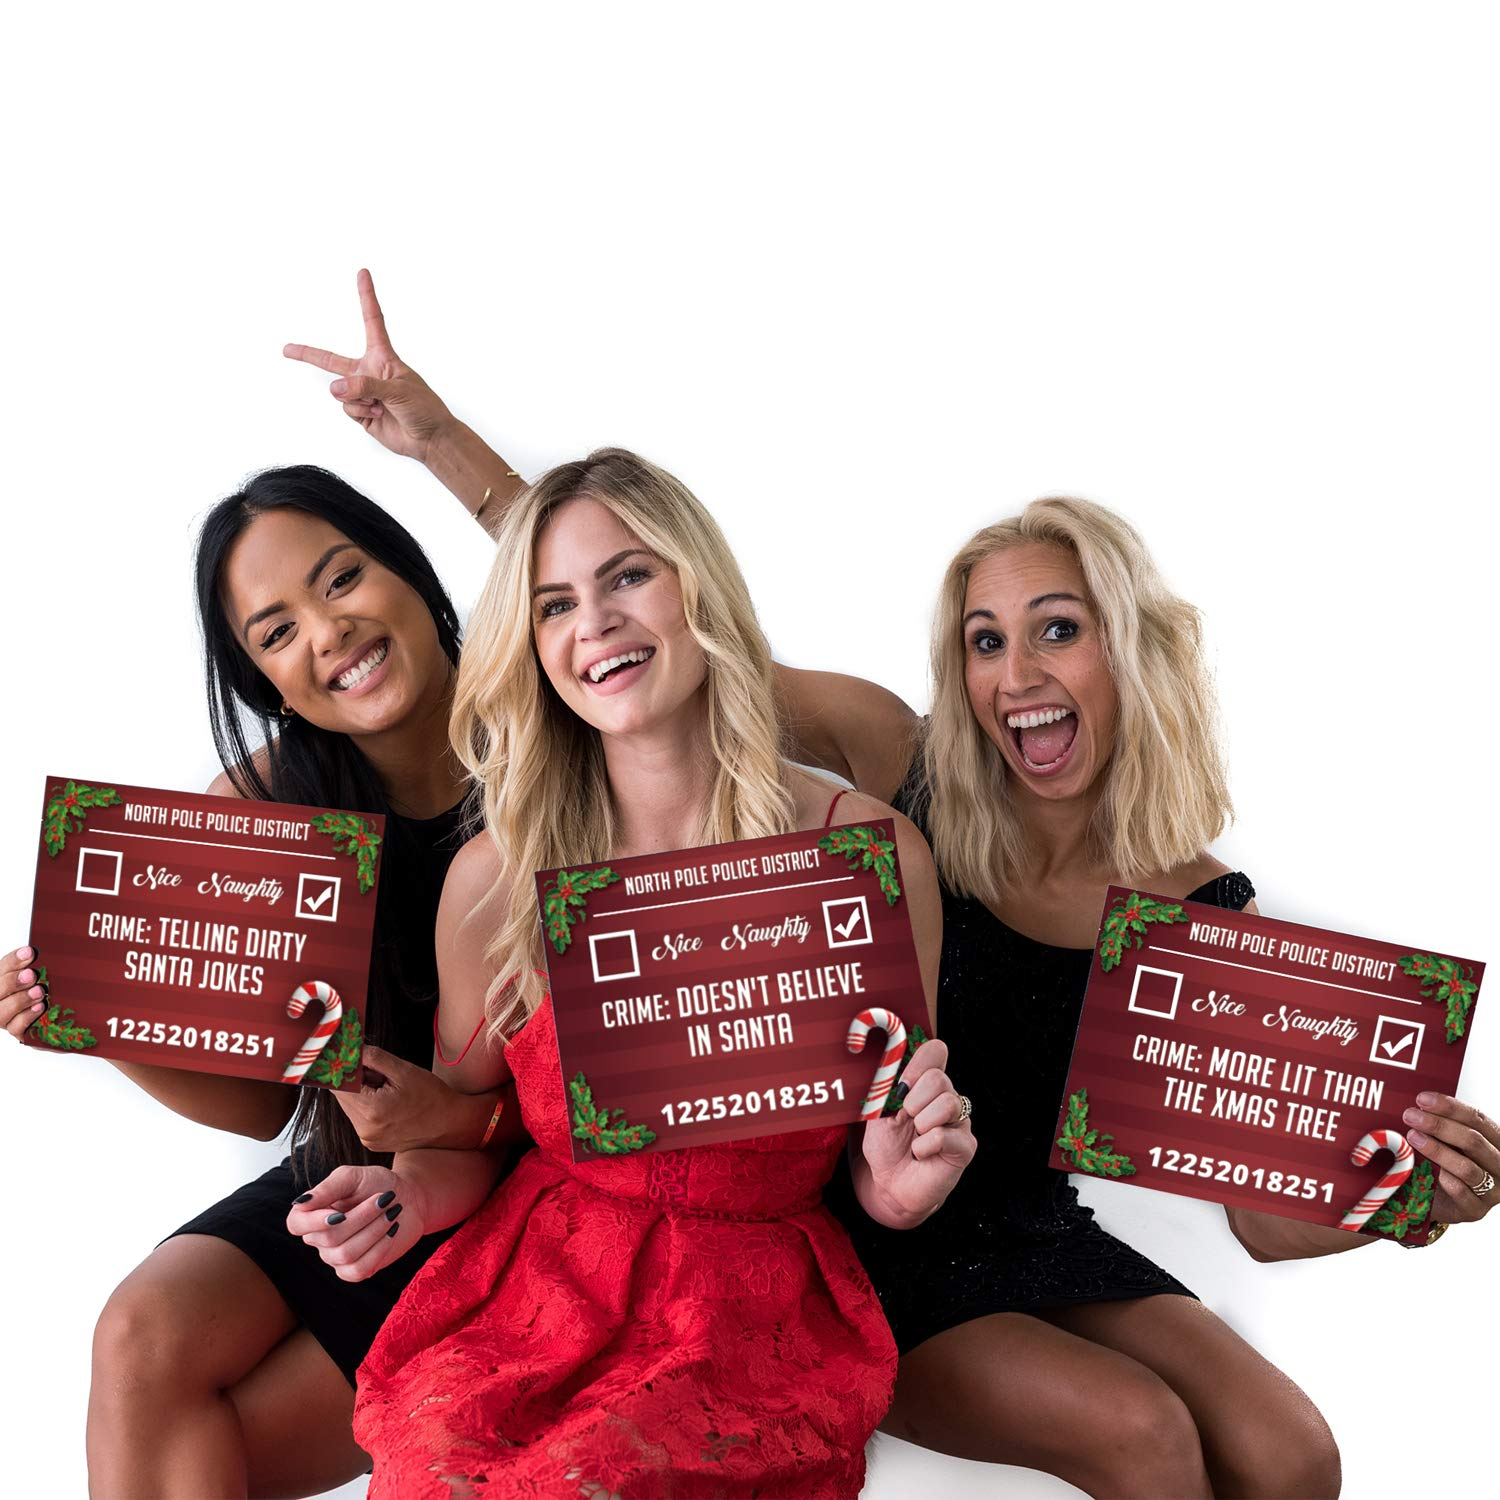 Christmas Photo Booth Prop Mugshot Signs 20 Double Sided Cards for 40 Fun Options!